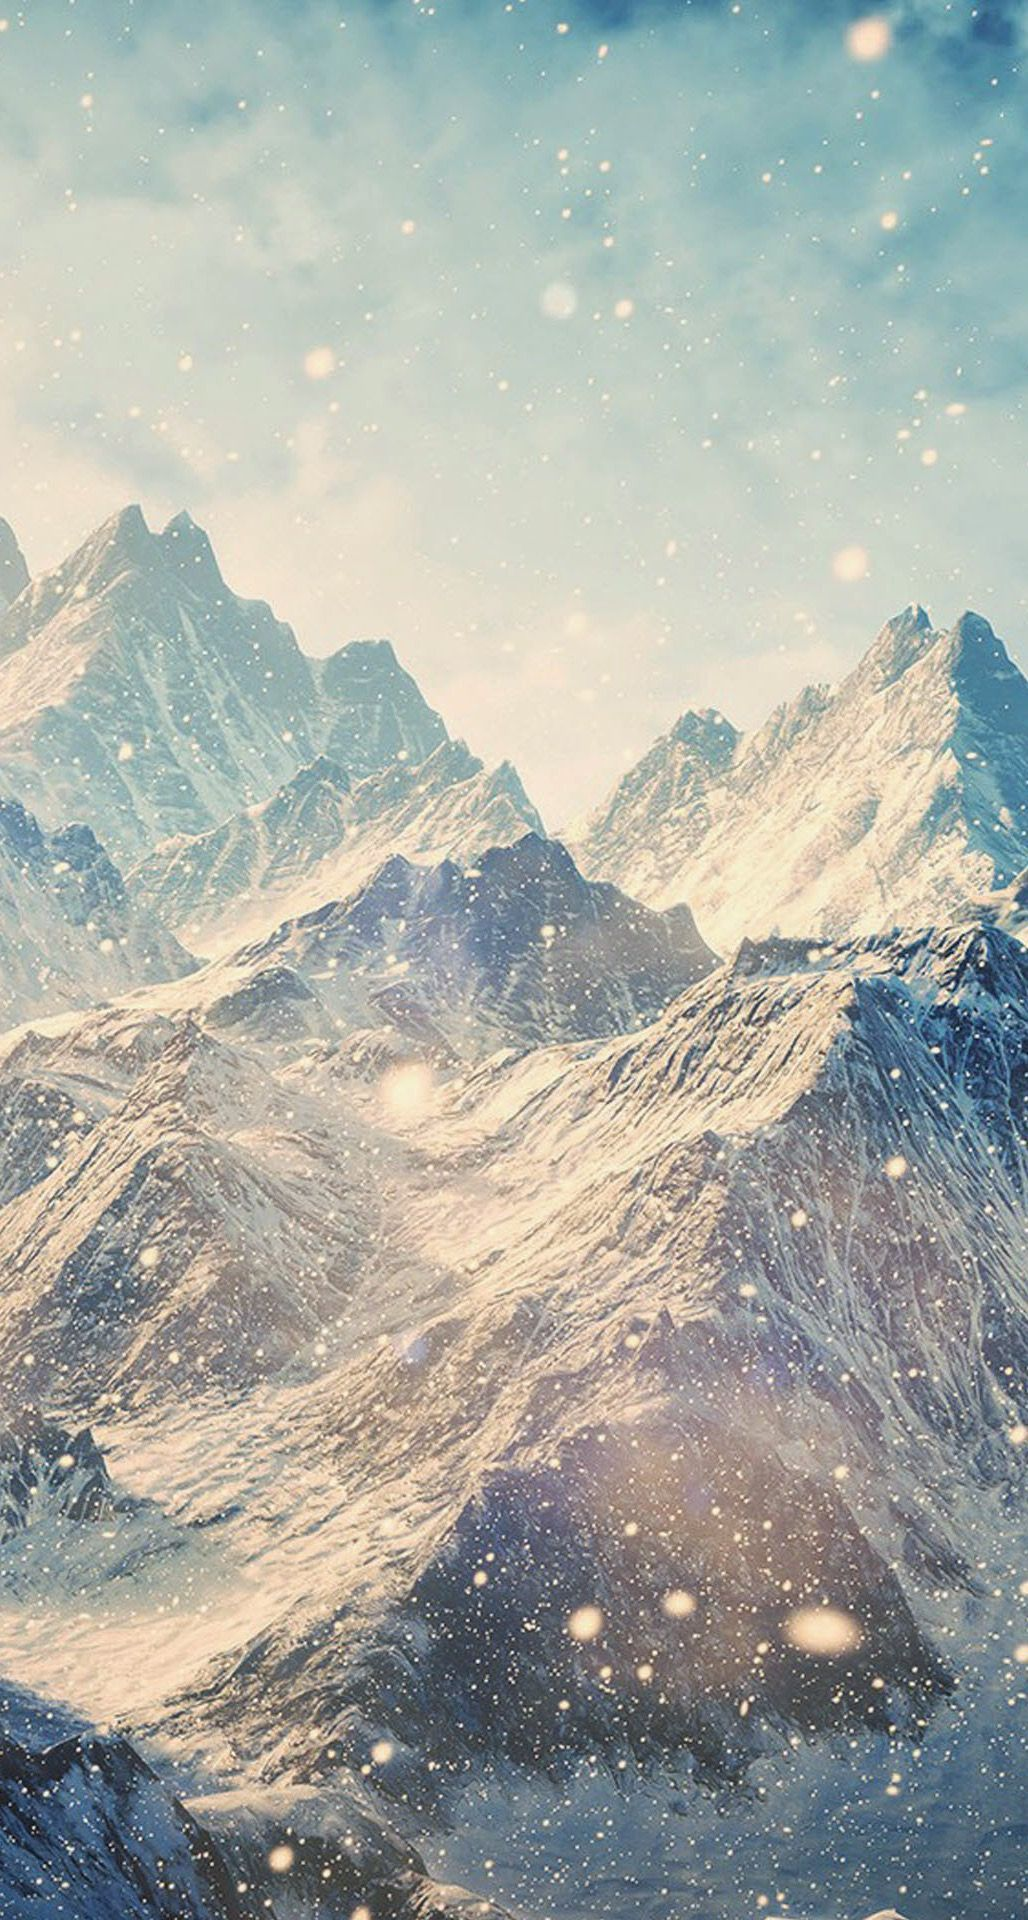 Iphone wallpaper tumblr snow - Iphone 7 Release Iphone 7 Plus Iphone 5c Iphone 6 Wallpaper Mountain Landscape Mountains Wallpapers Journalism Scenery